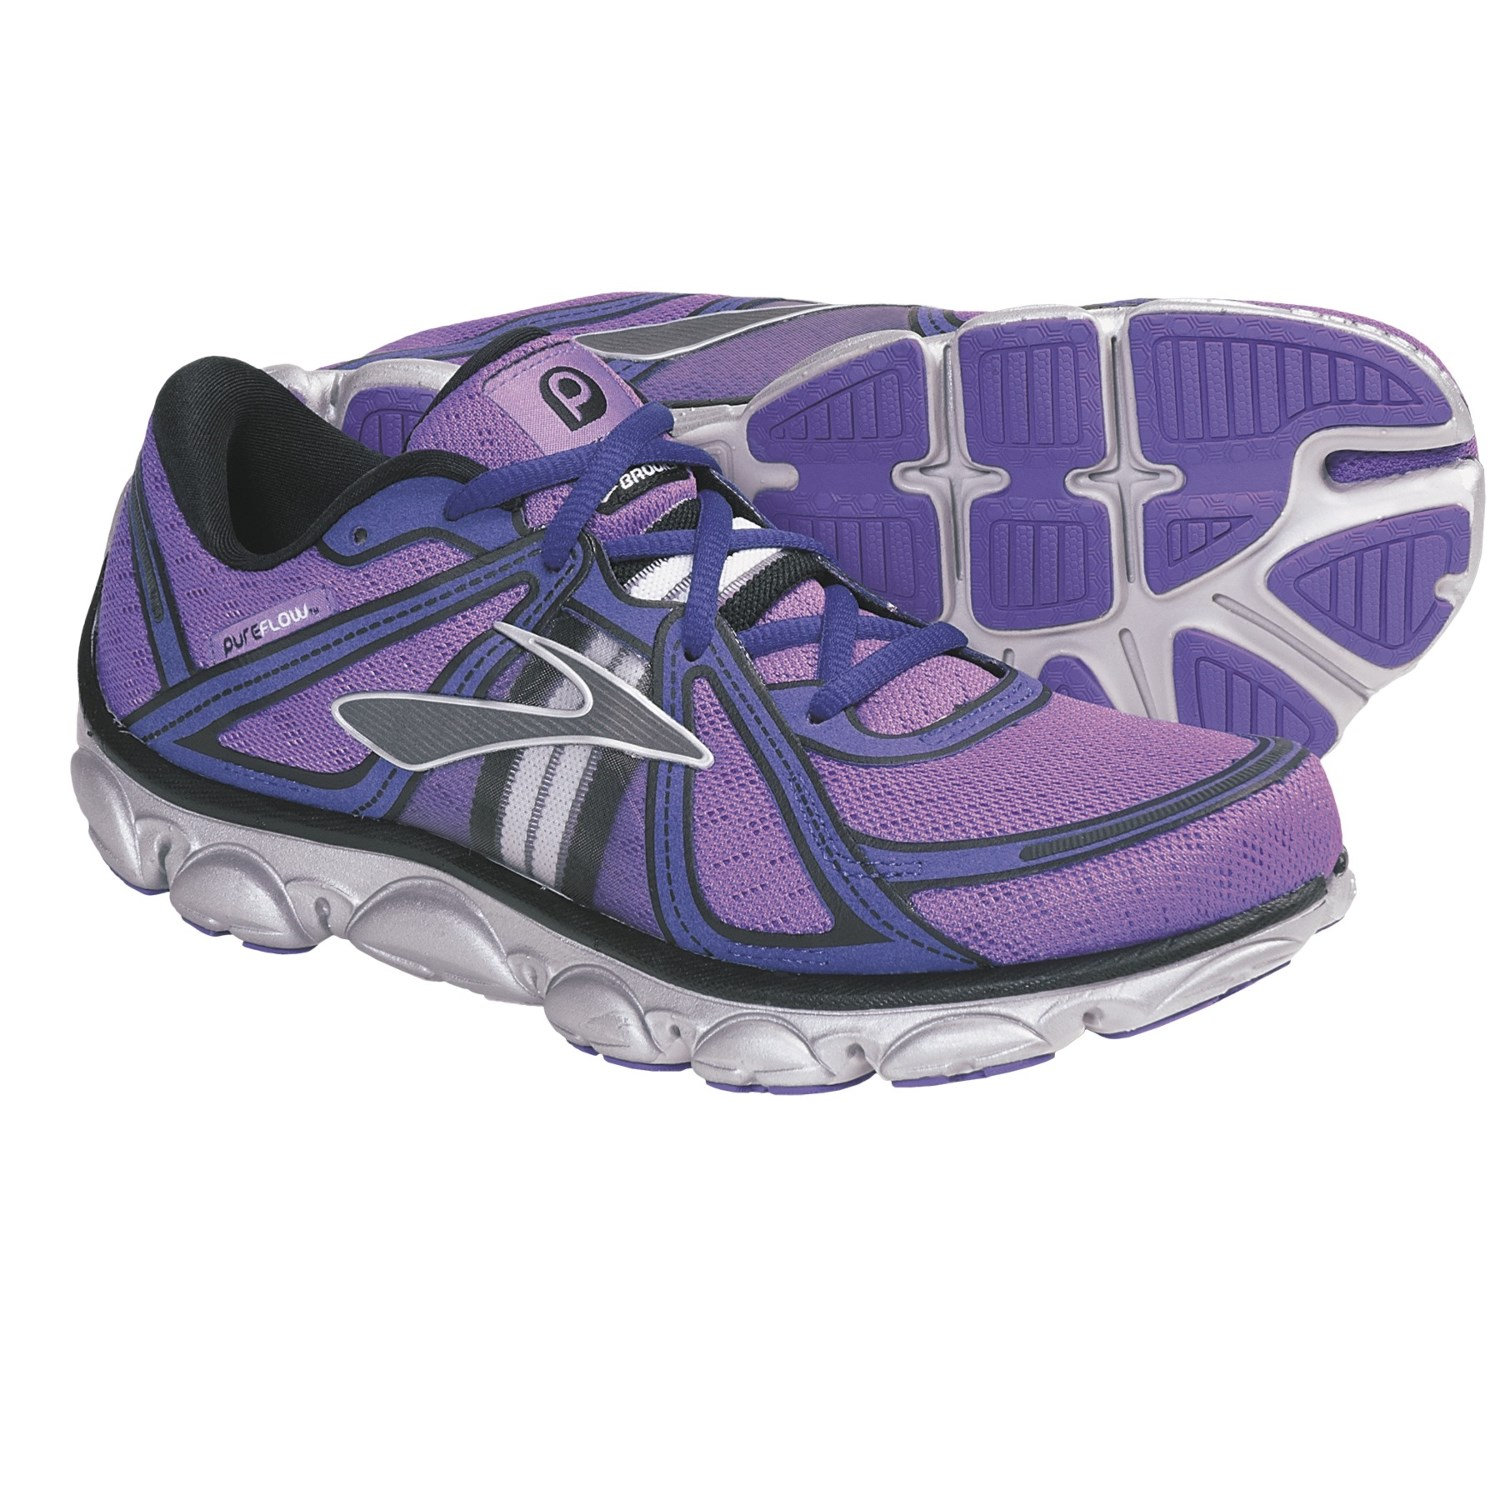 brooks-pureflow-running-shoes-for-women-in-neon-purple-neon-blue-black